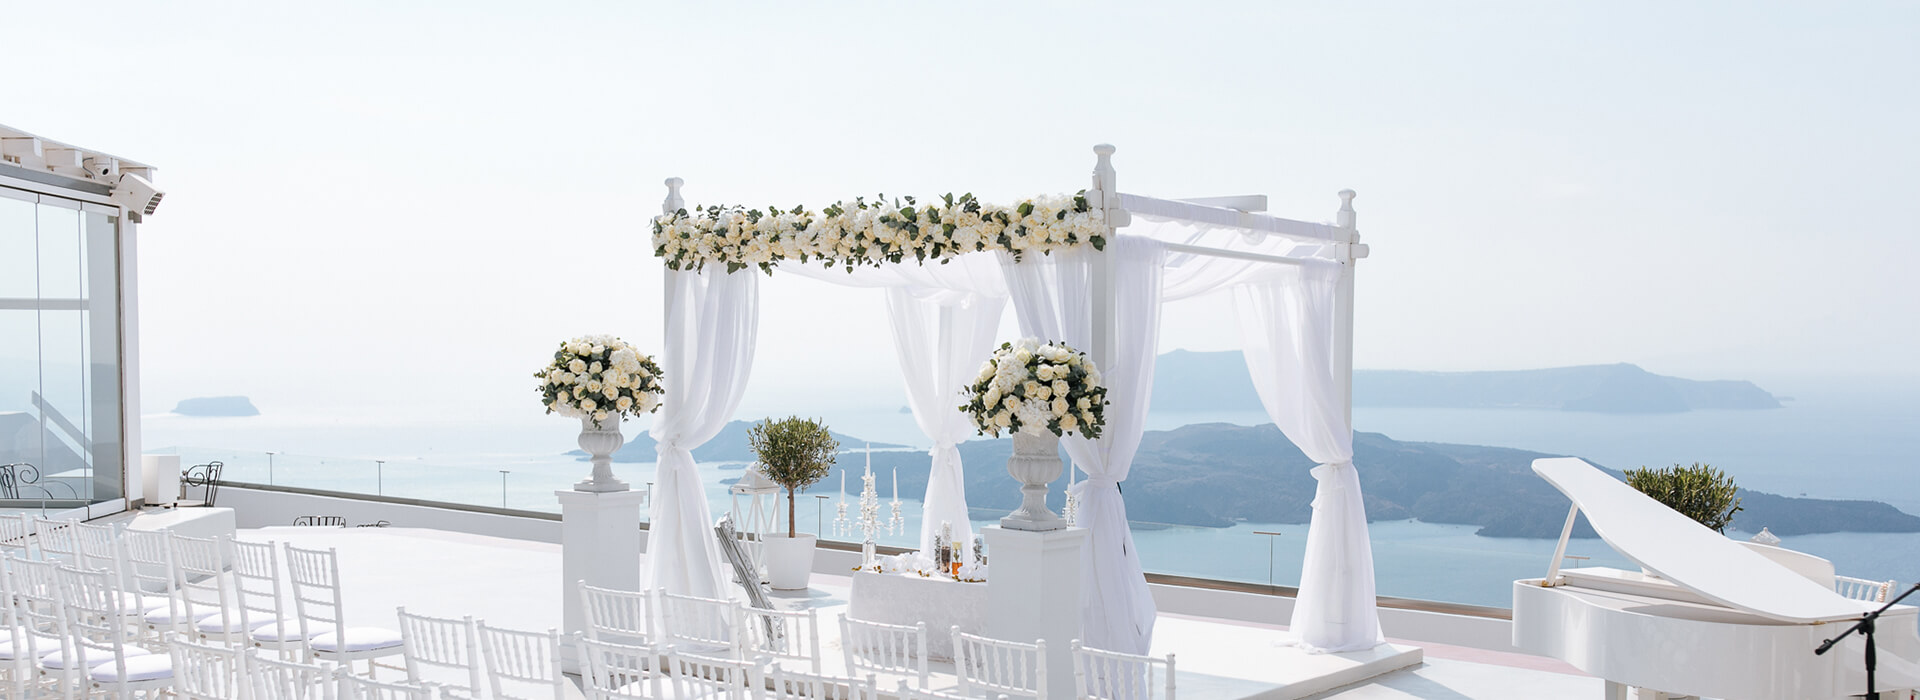 Reception Terrace - Wedding Reception- Santorini Gem